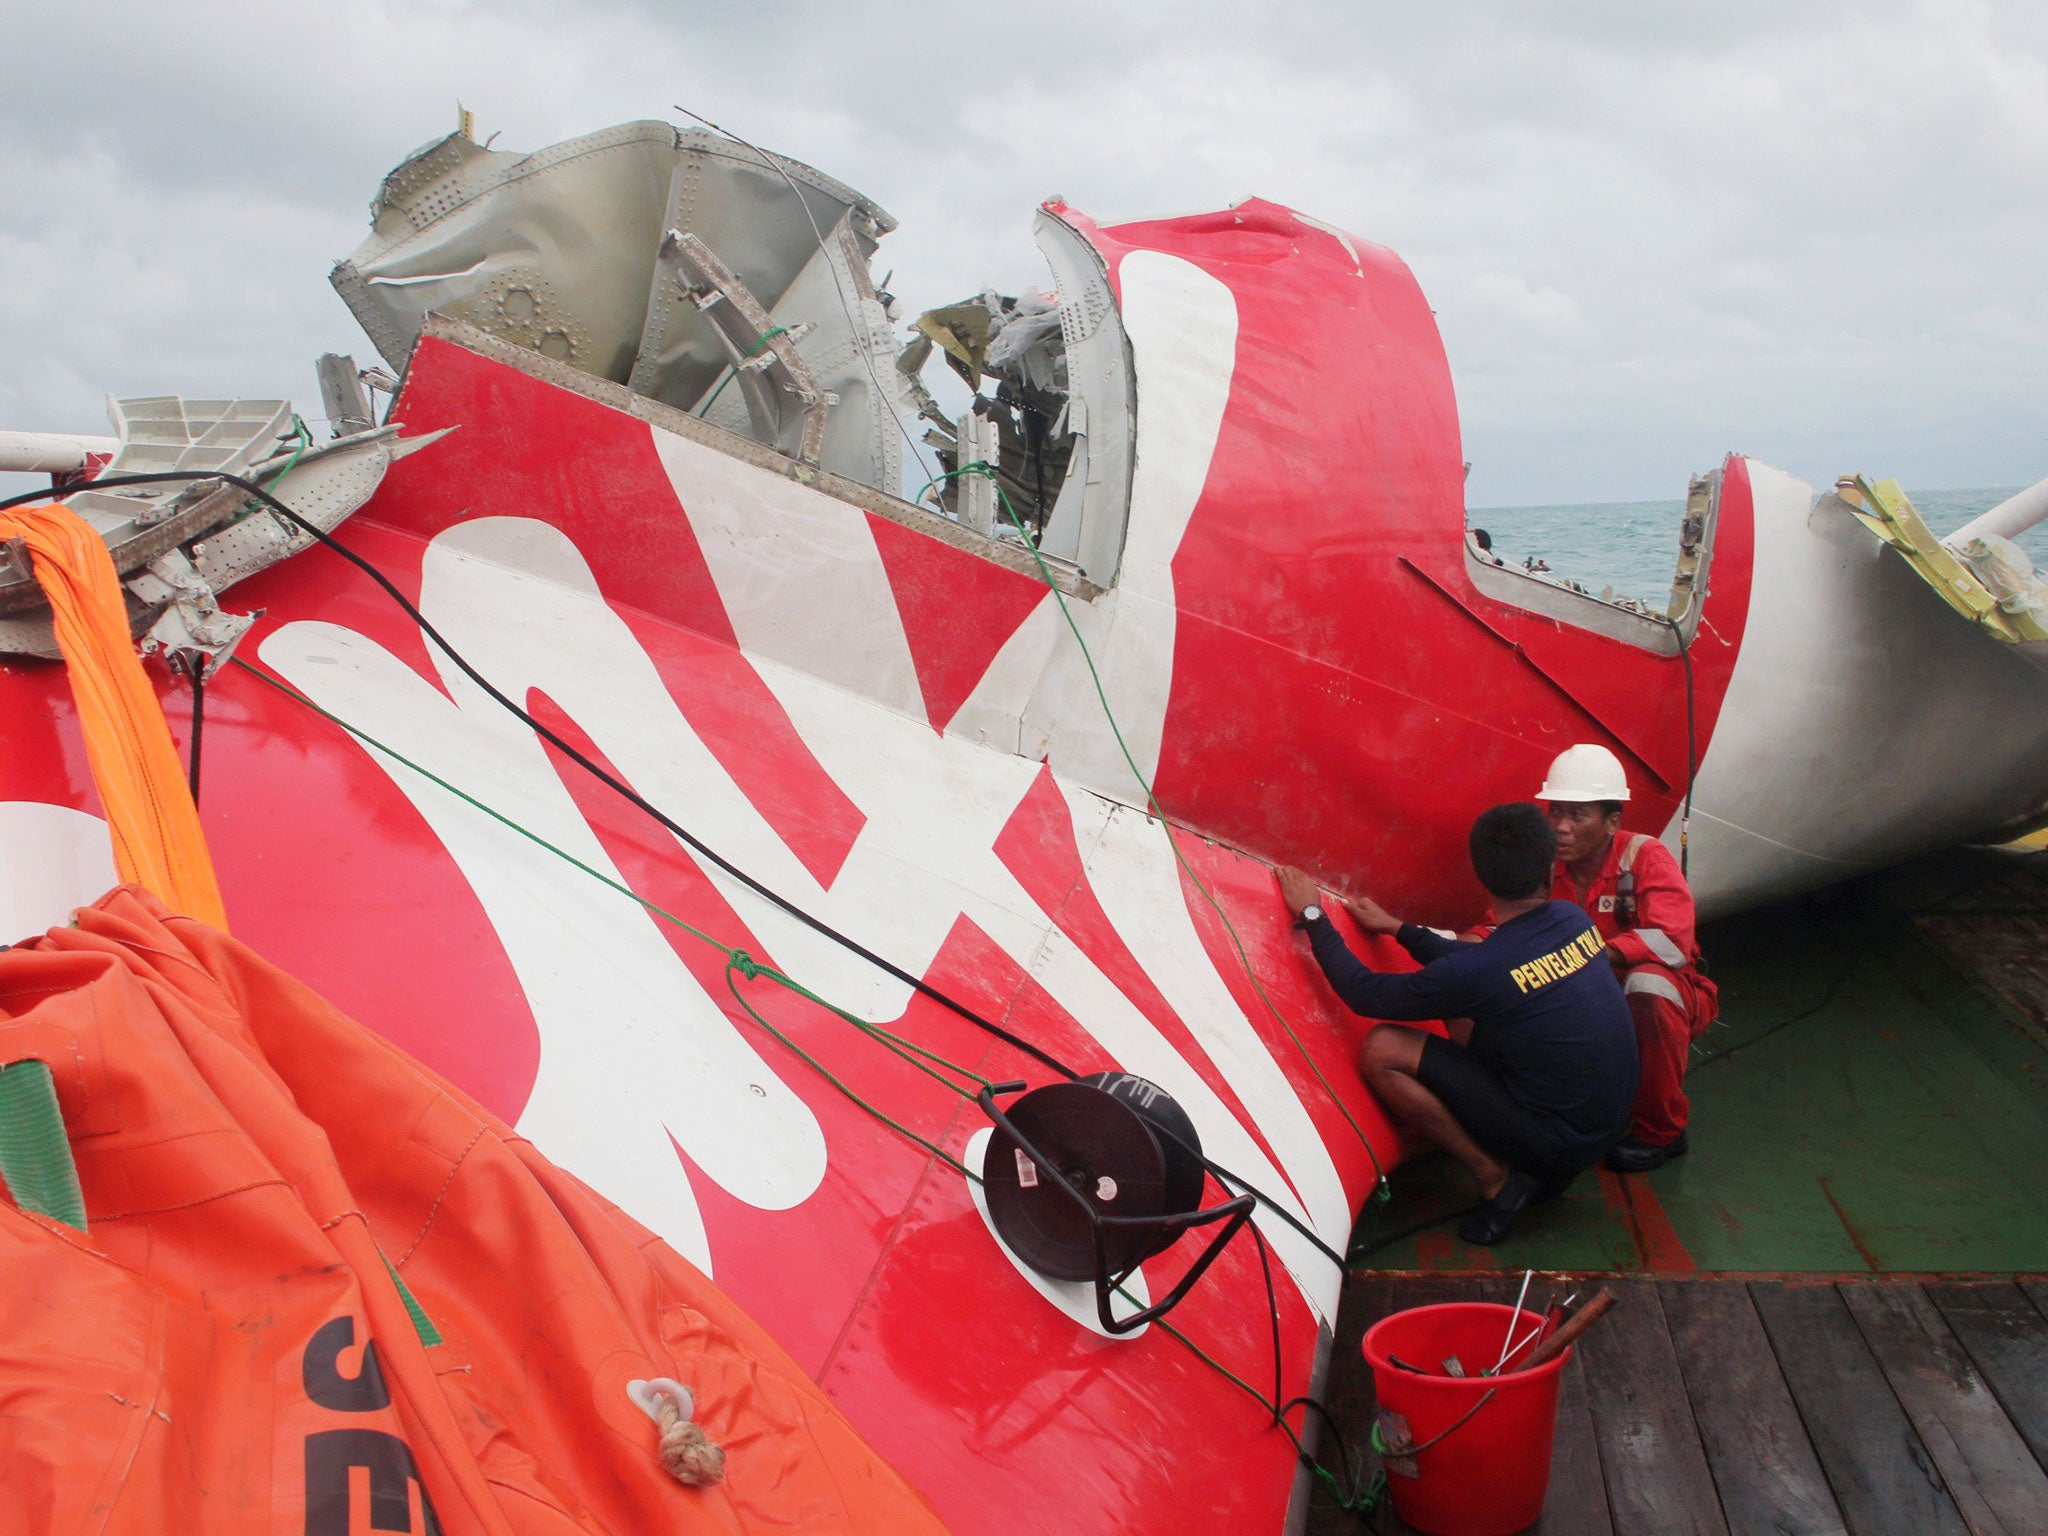 AirAsia crash: Plane tail raised from sea bed prior to inspecting it